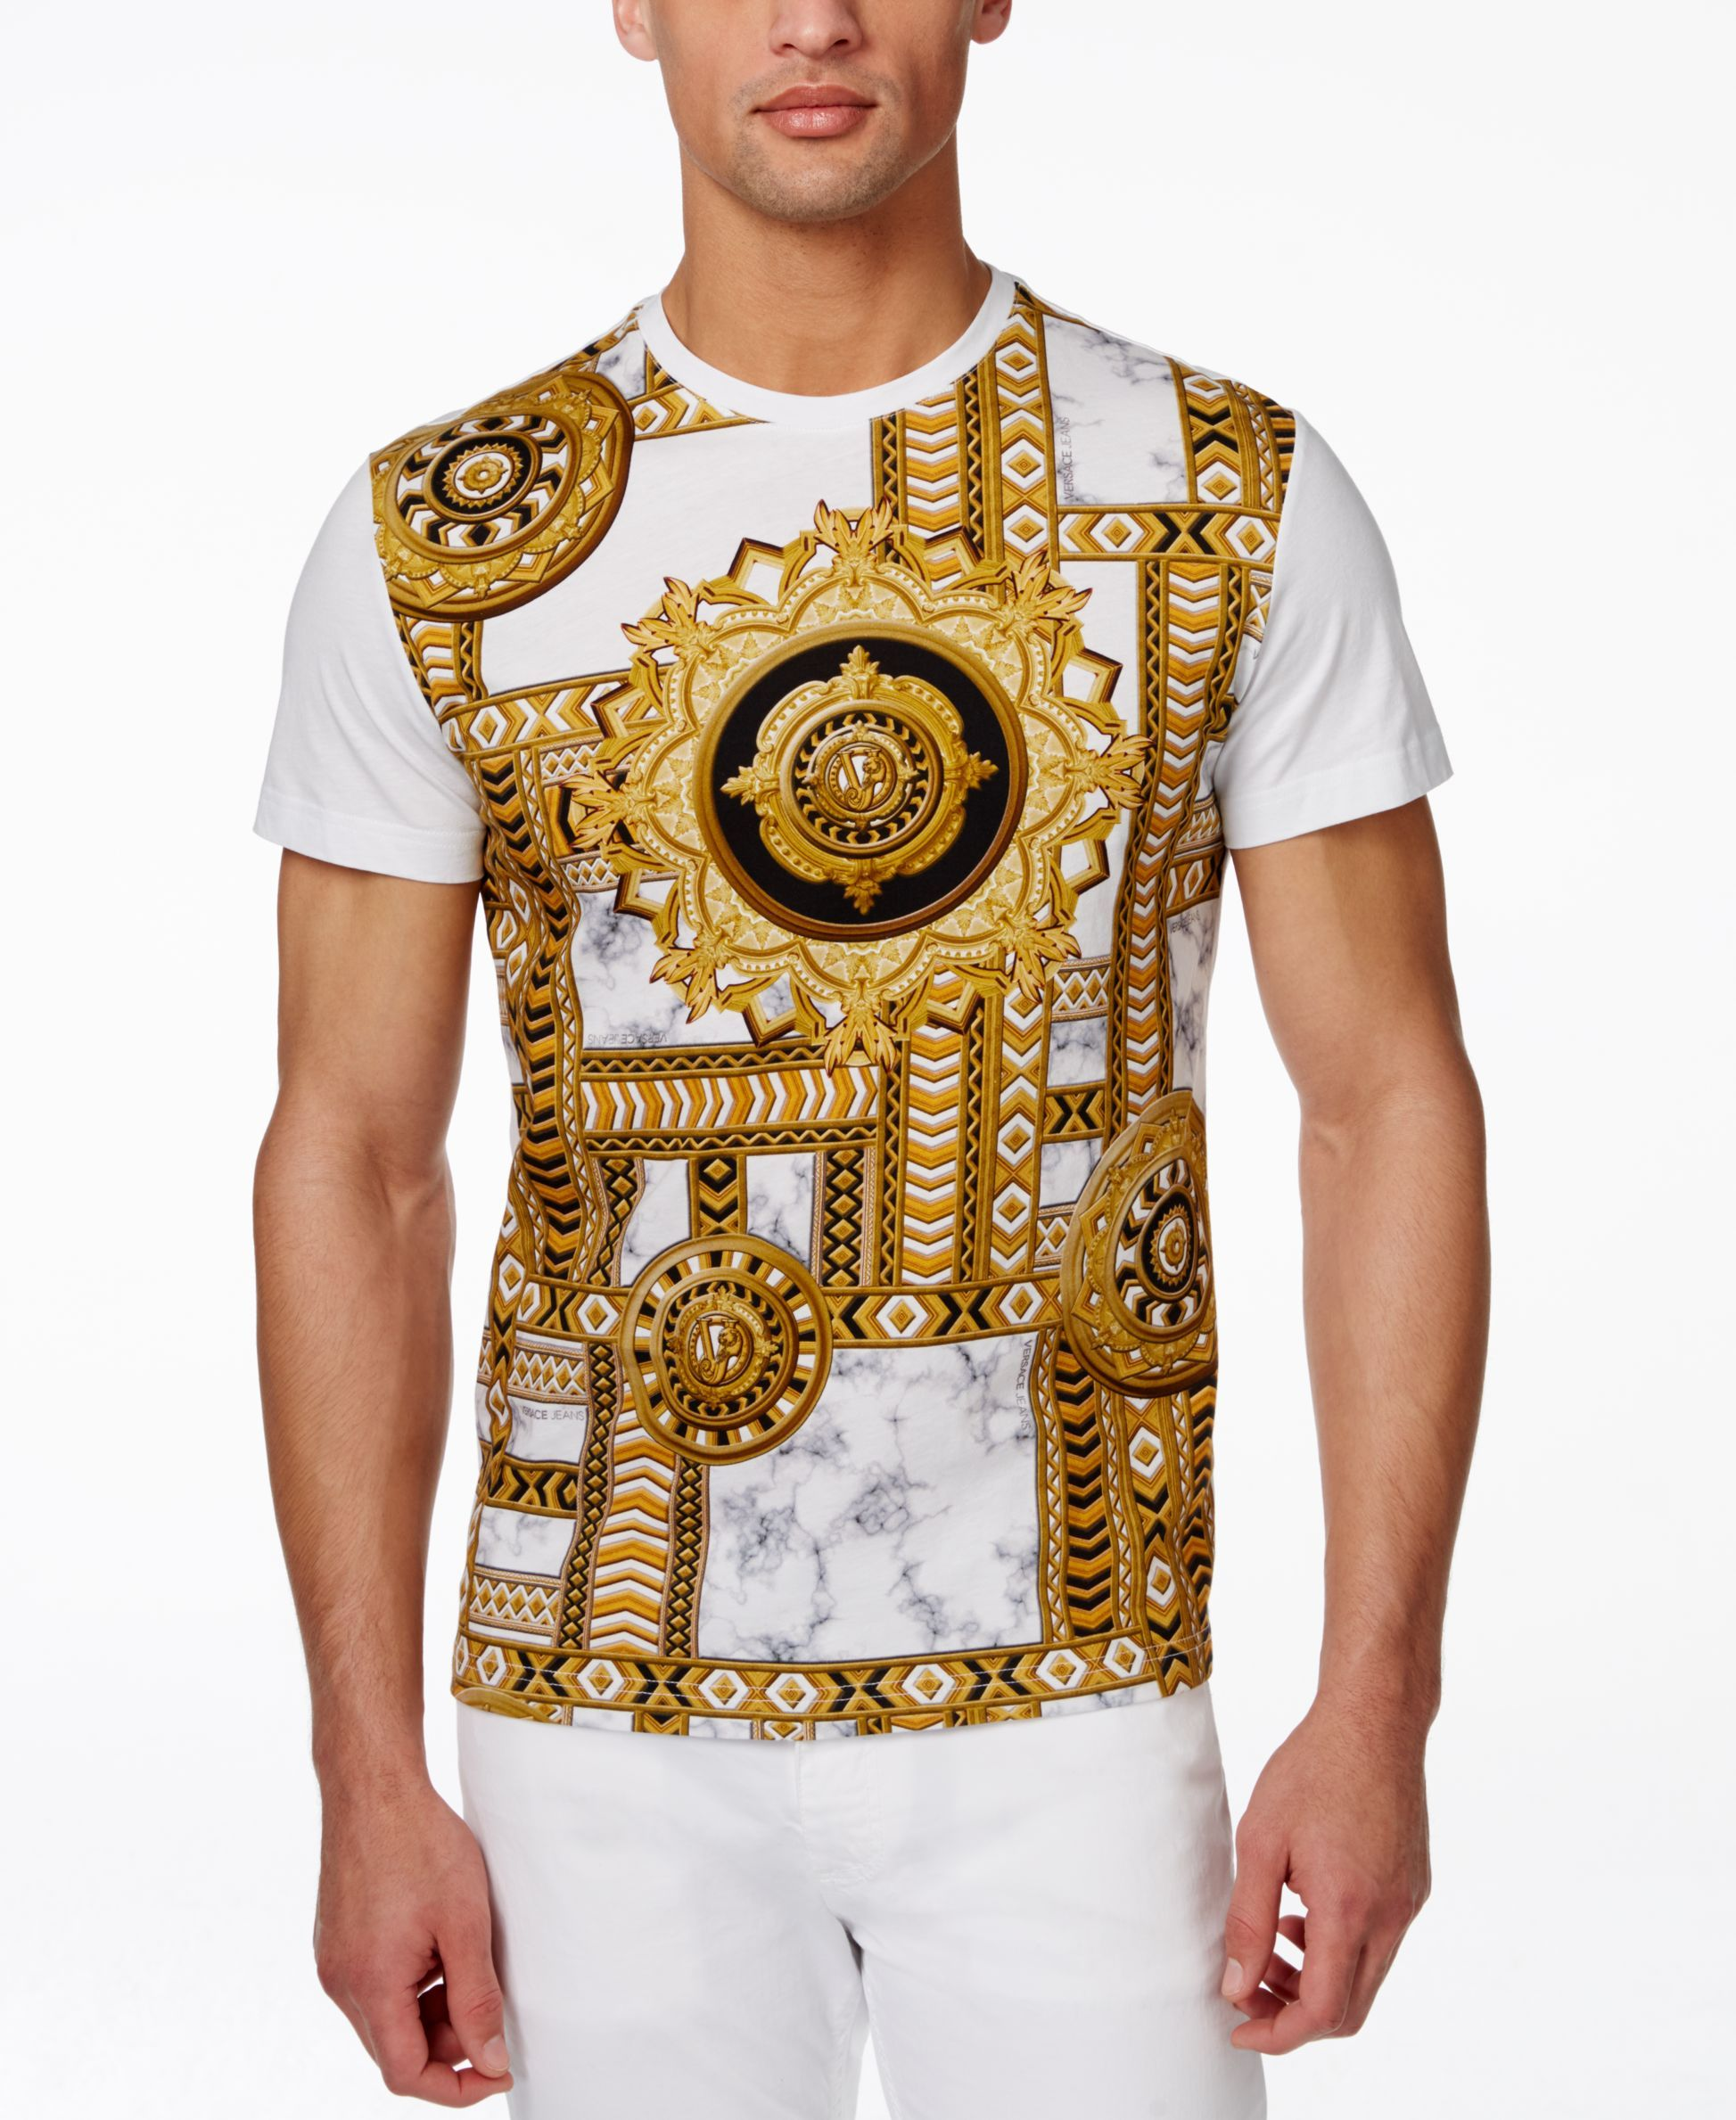 die besten 25 versace t shirt ideen auf pinterest versace t shirt m nner versace hemden und. Black Bedroom Furniture Sets. Home Design Ideas